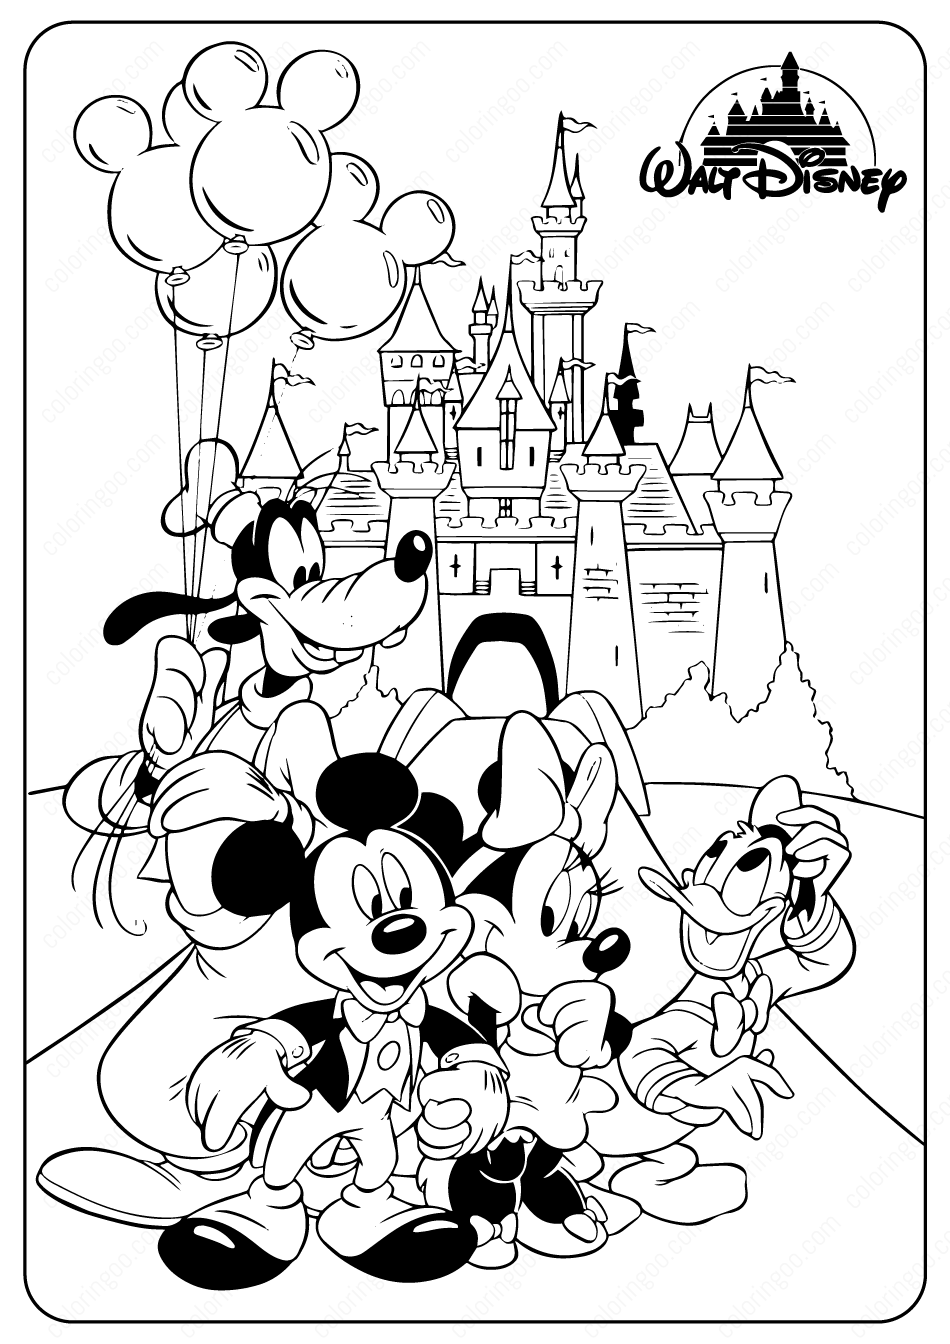 Minnie Mickey Mouse Coloring Pages In 2020 Disney Coloring Pages Cartoon Coloring Pages Disney Coloring Sheets